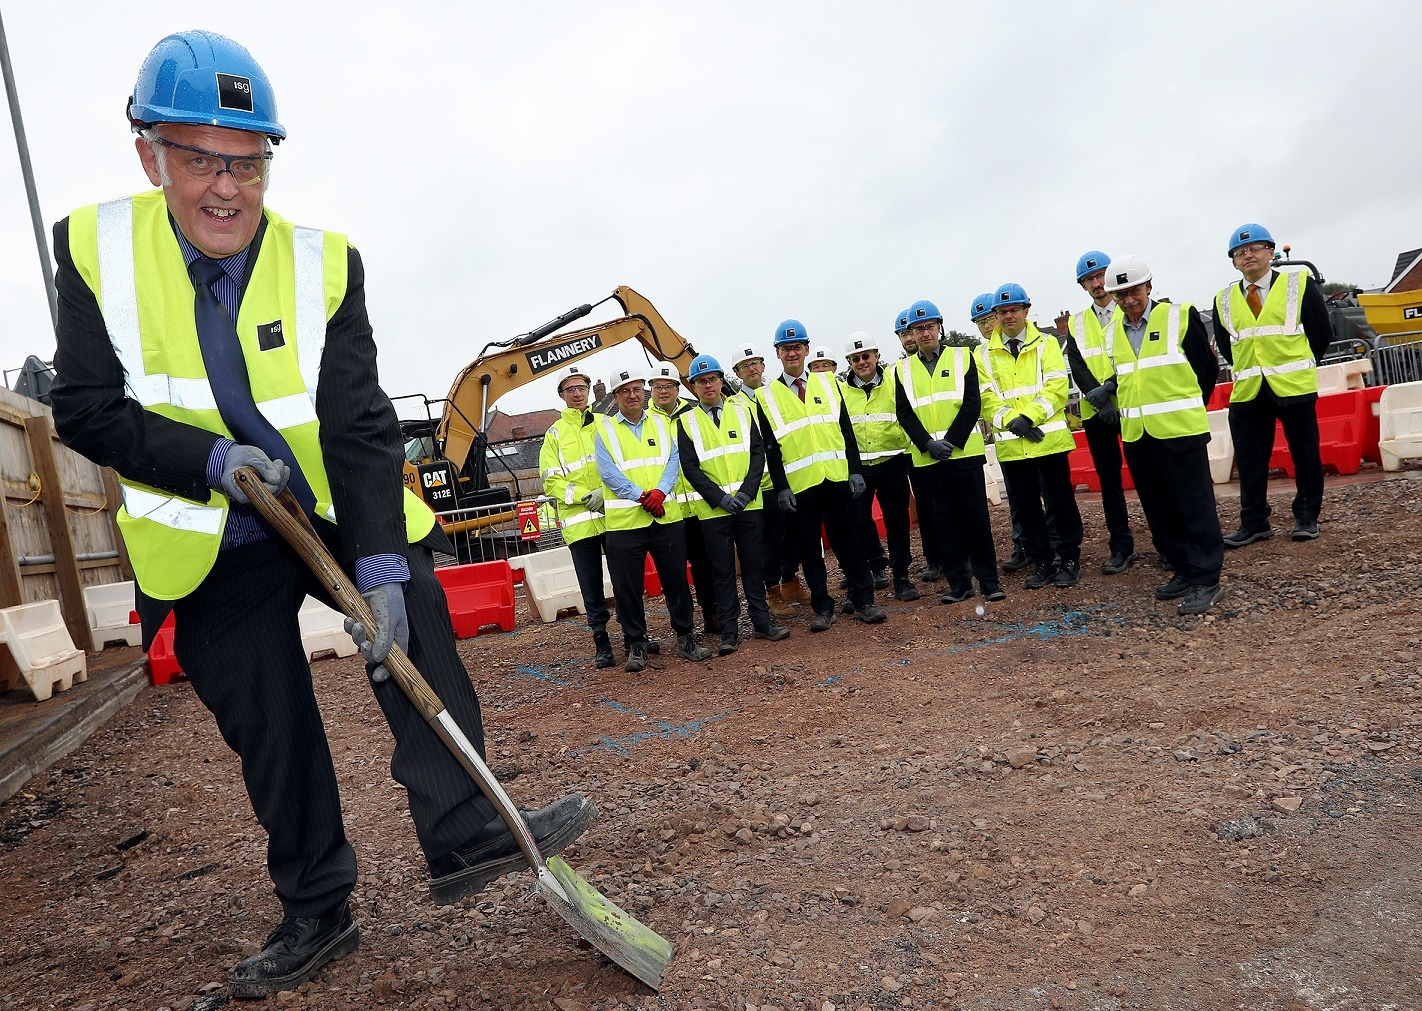 Brian Taylor, Chair of Birmingham Community Leisure Trust breaks the first ground at the site of Erdington's new leisure centre watched by representatives of BCLT, Birmingham City Council, ISG Construction plc and Sport England